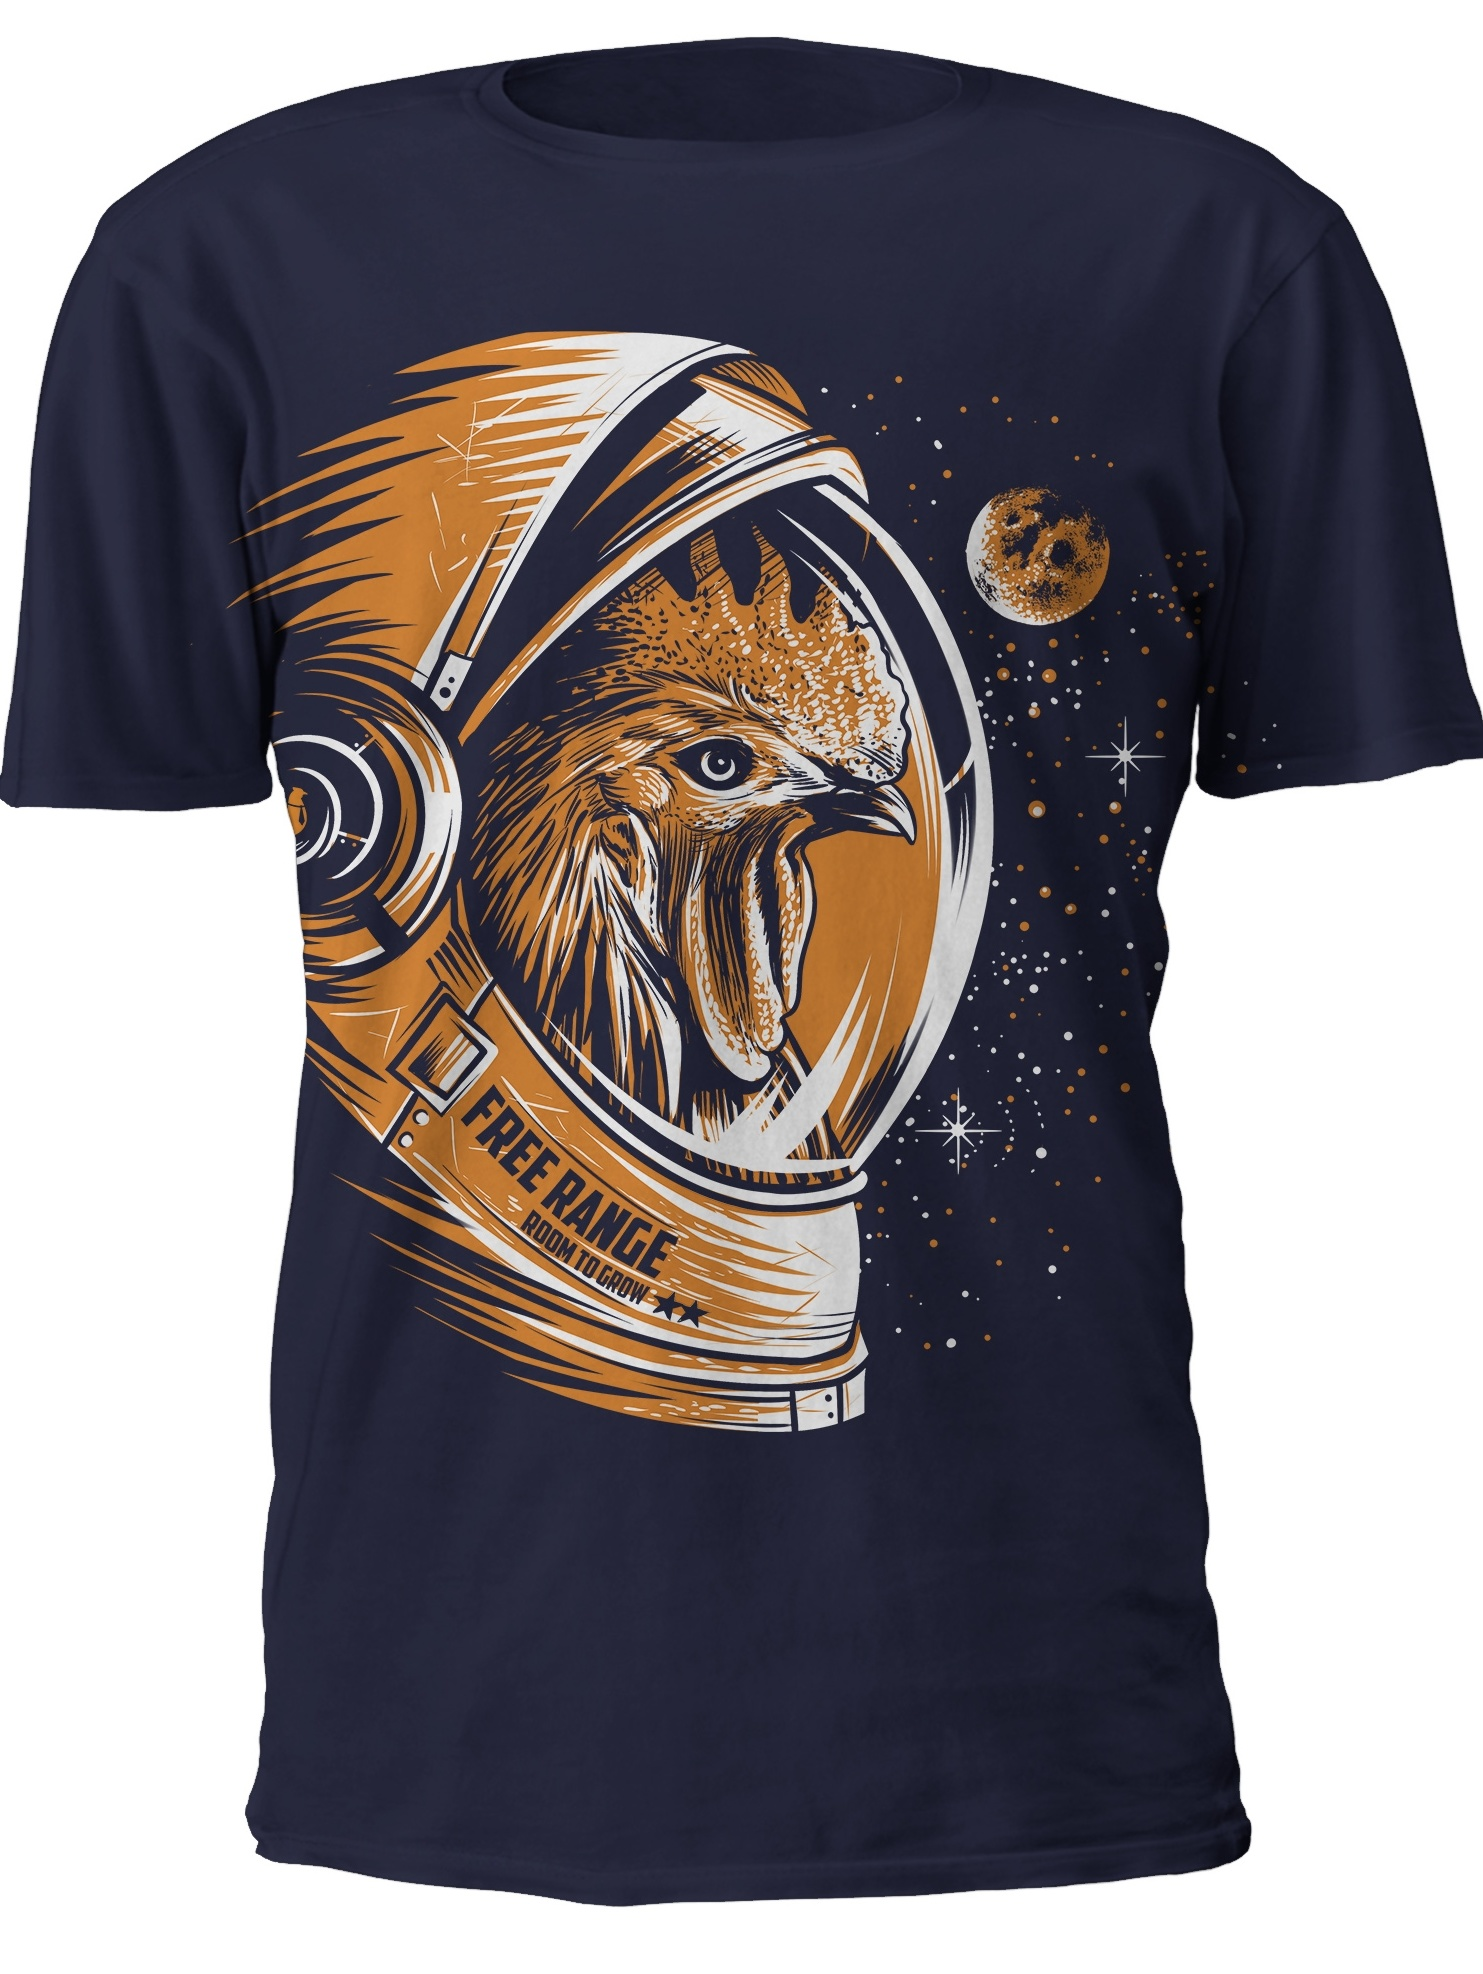 Illustrated chicken astronaut t shirt